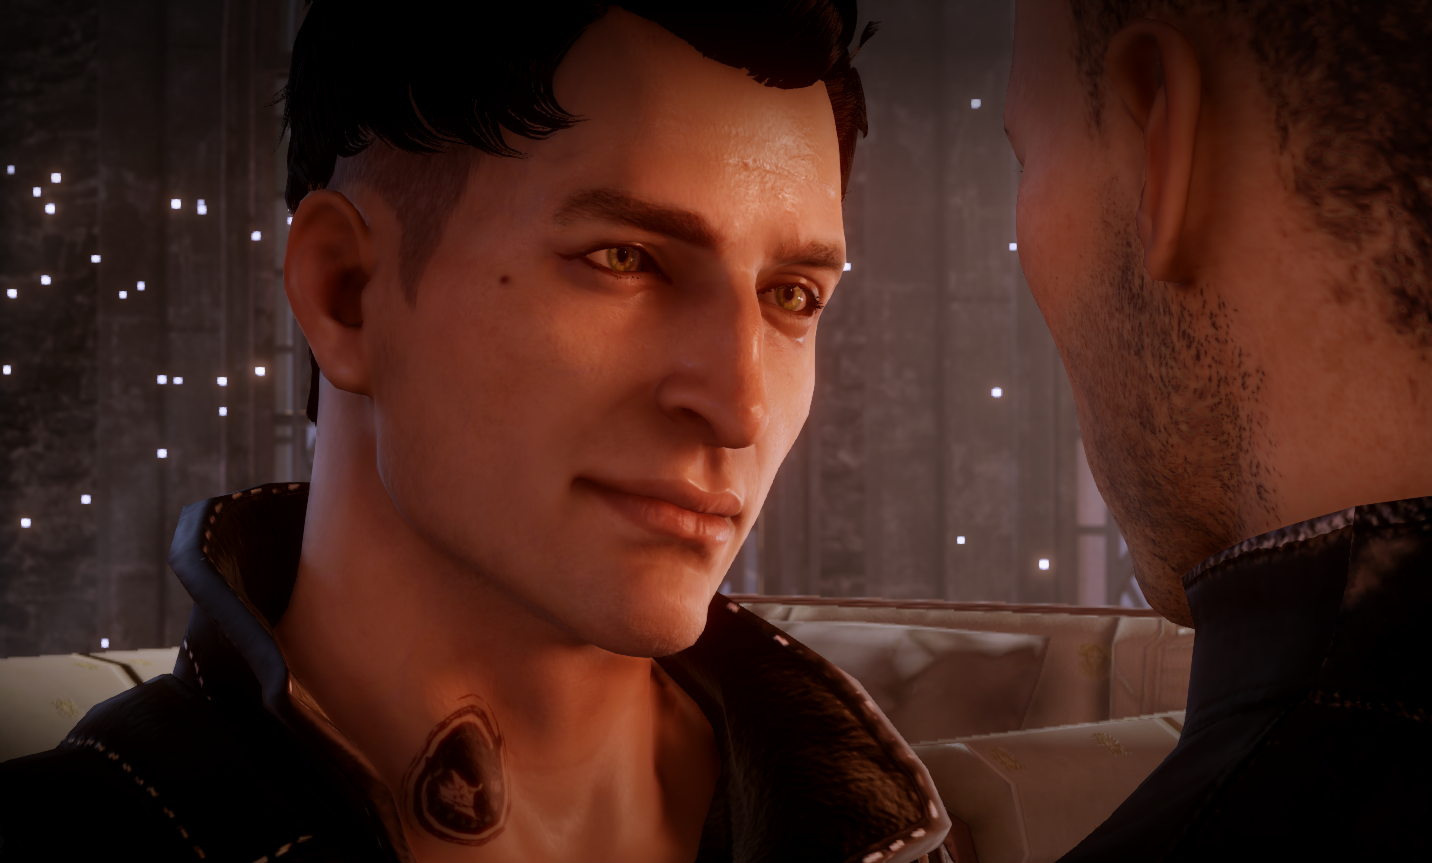 Dorian Tattoos At Dragon Age Inquisition Nexus  Mods And Community